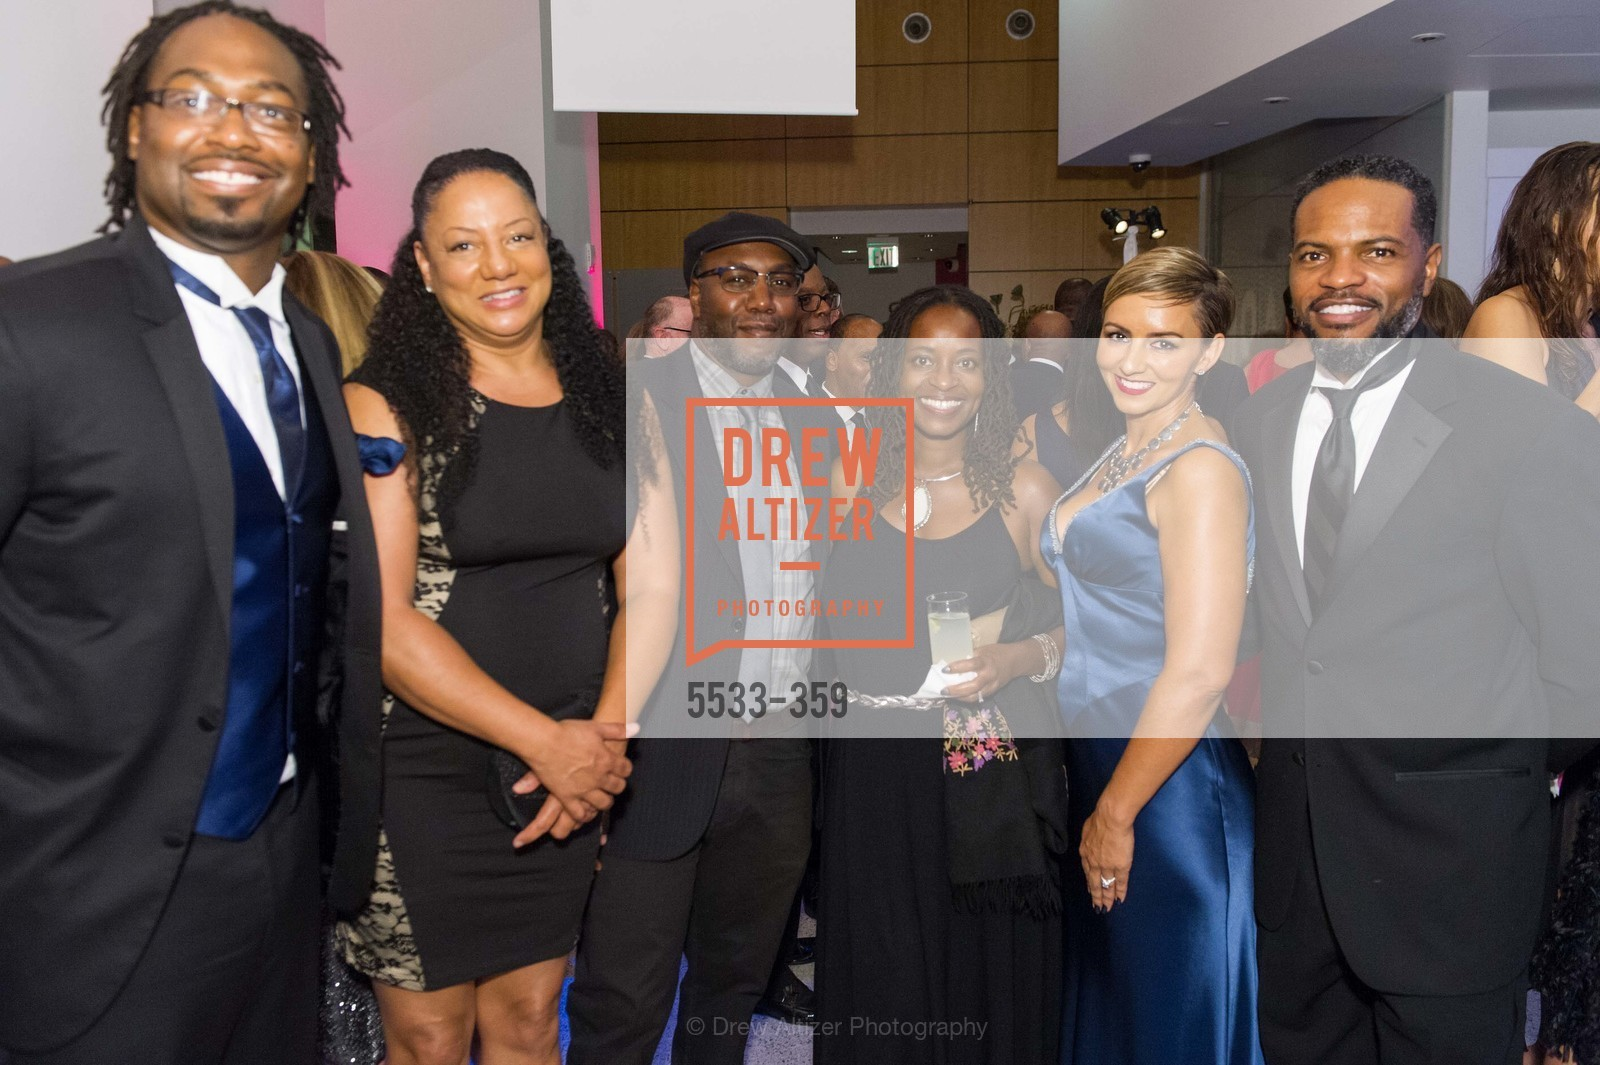 Kalimah Priforce, Olis Simmons, Jahi Naho, Kelley Nayo, Cristin DeBerry, Stephen DeBerry, 2015 MoAD Gala: Finding the I in Diaspora, MoAD Museum & The St. Regis, October 10th, 2015,Drew Altizer, Drew Altizer Photography, full-service agency, private events, San Francisco photographer, photographer california